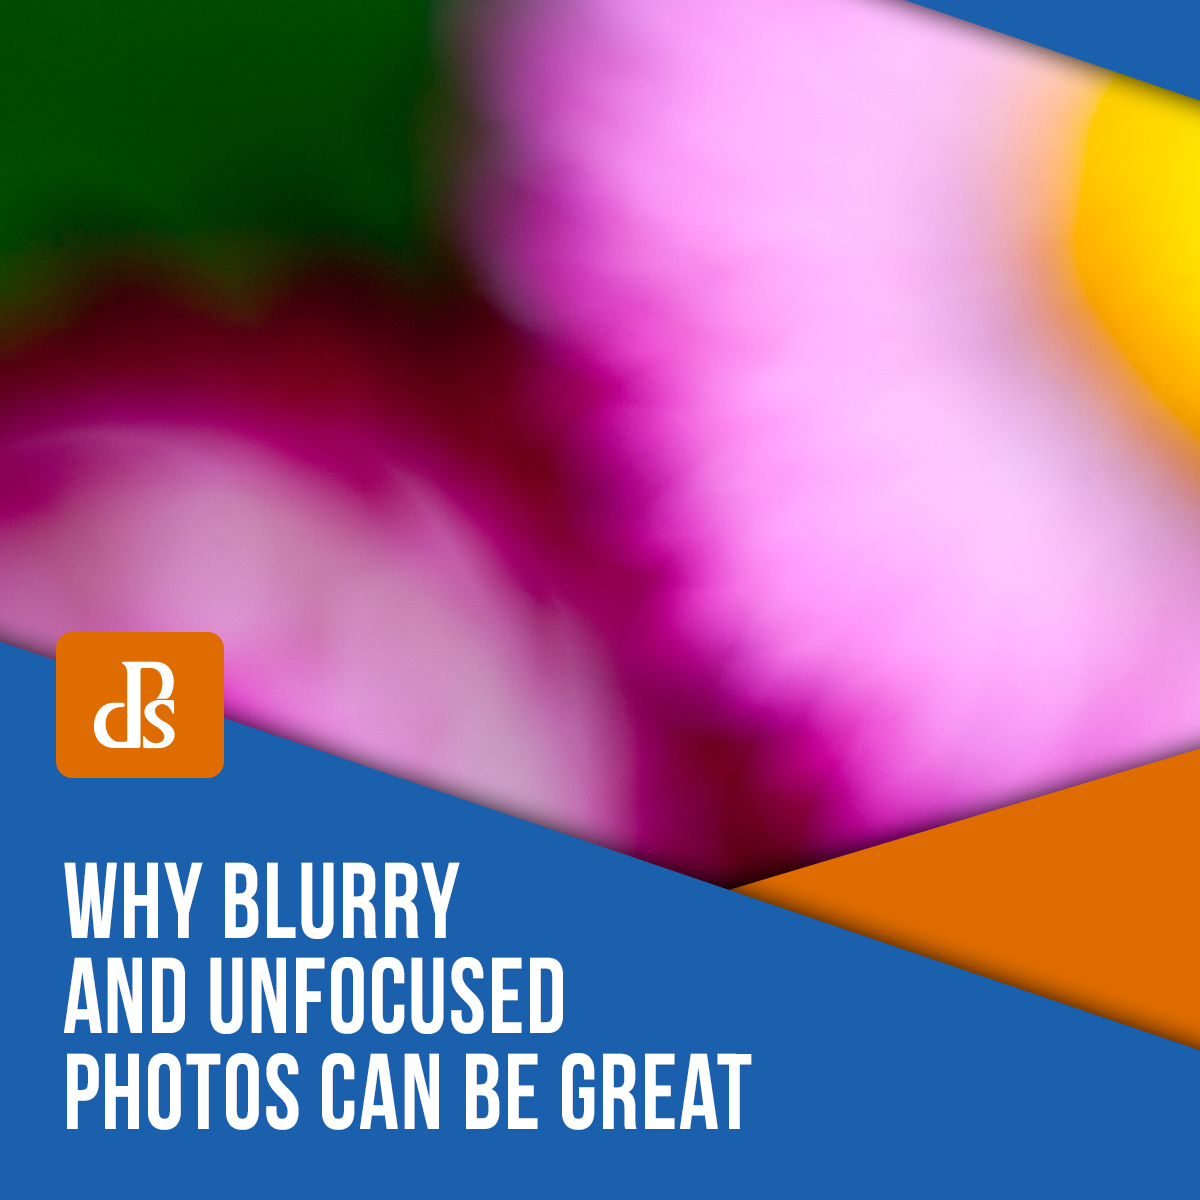 Why Blurry and Unfocused Photos Can be Great